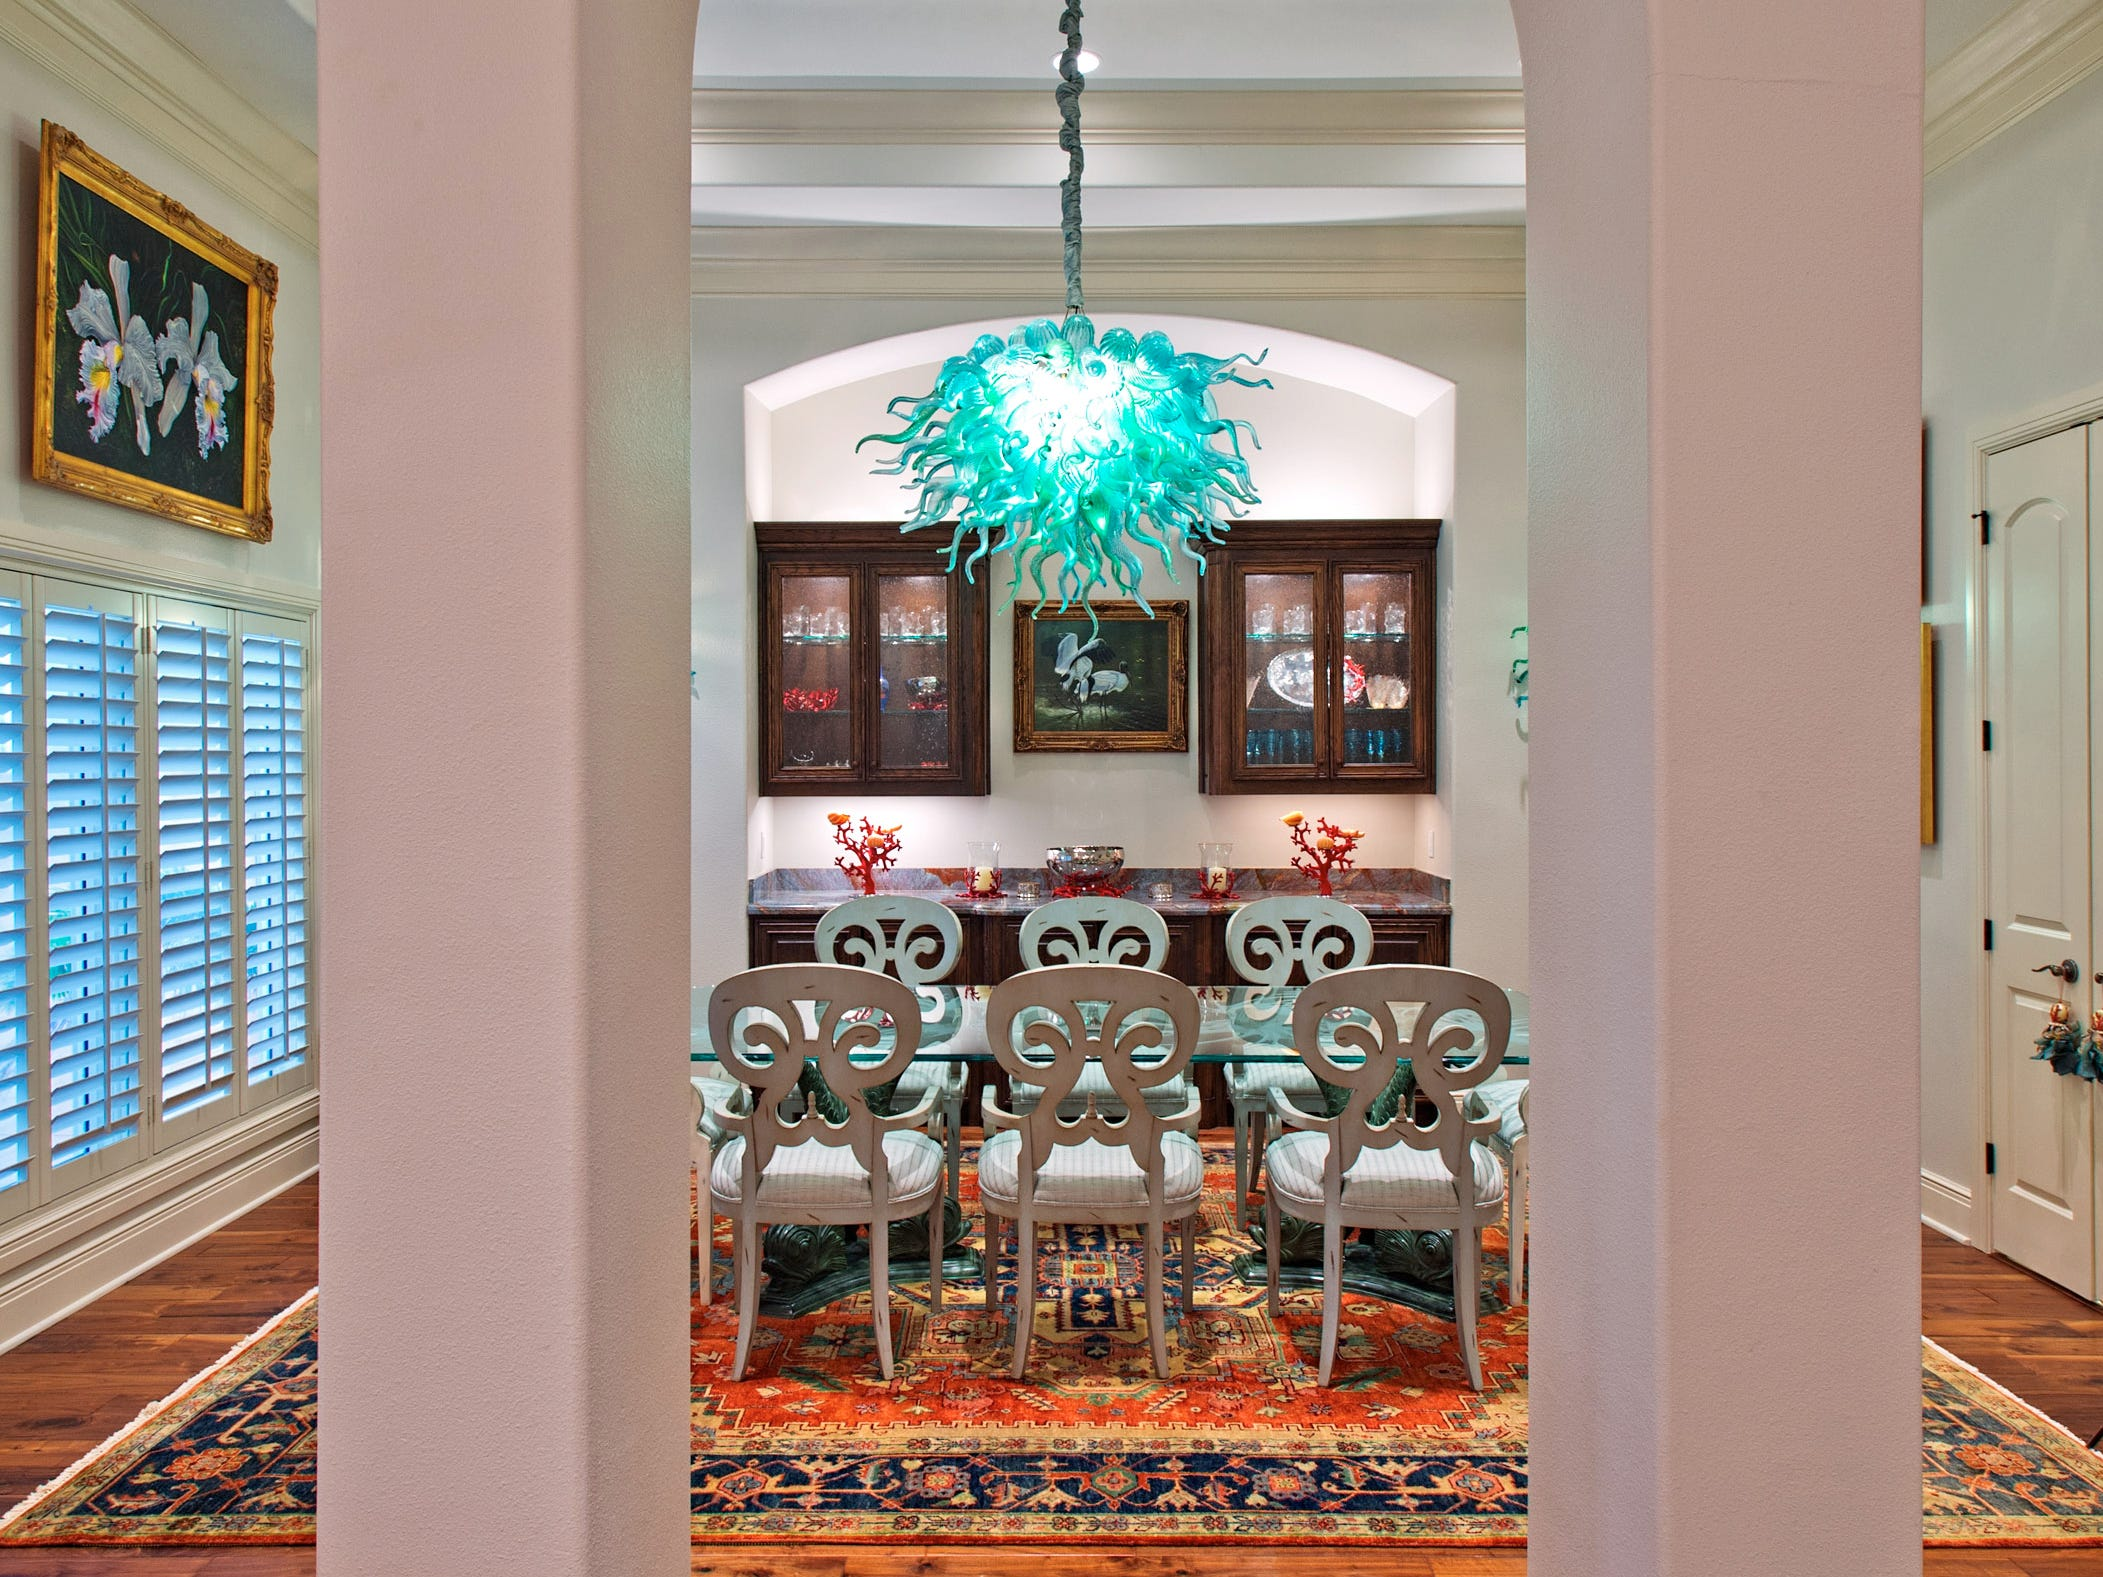 Chihuly inspired chandelier and sconces illuminate the dining room set behind a trio of archways, this room is quite simply stunning